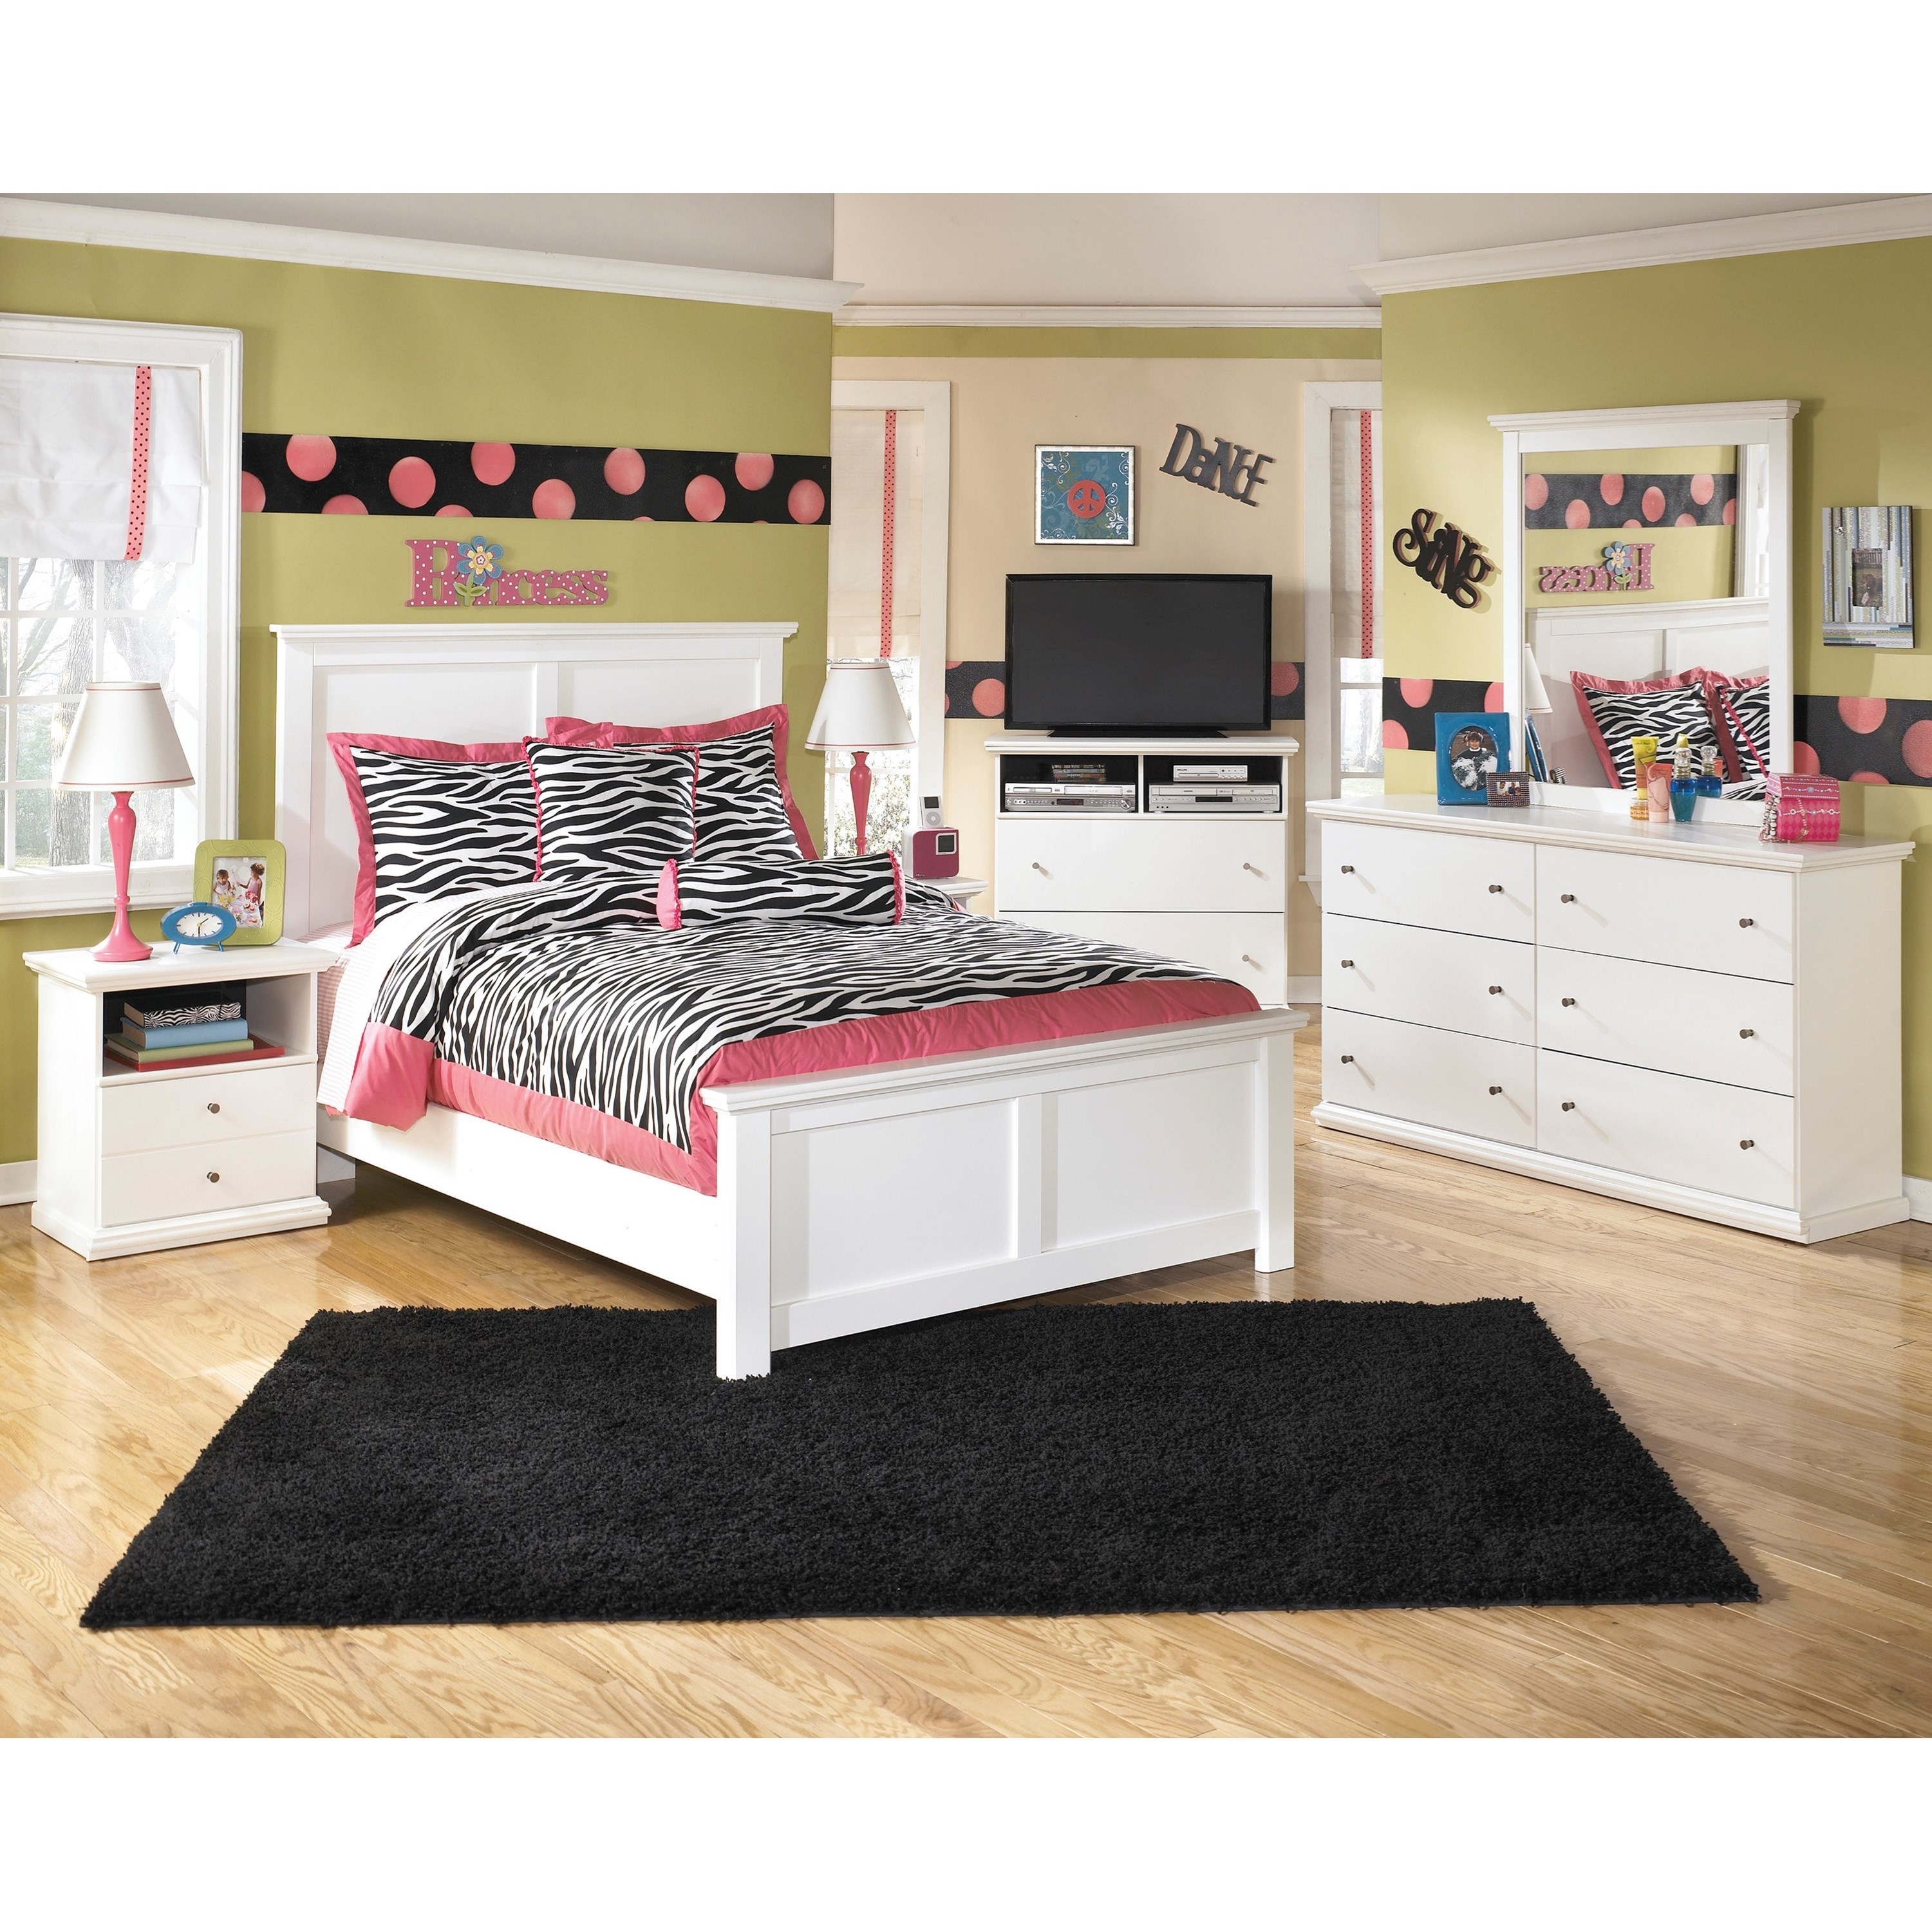 Signature Design by Ashley Bostwick Shoals Full Bedroom Group - Item Number: B139 F Bedroom Group 5